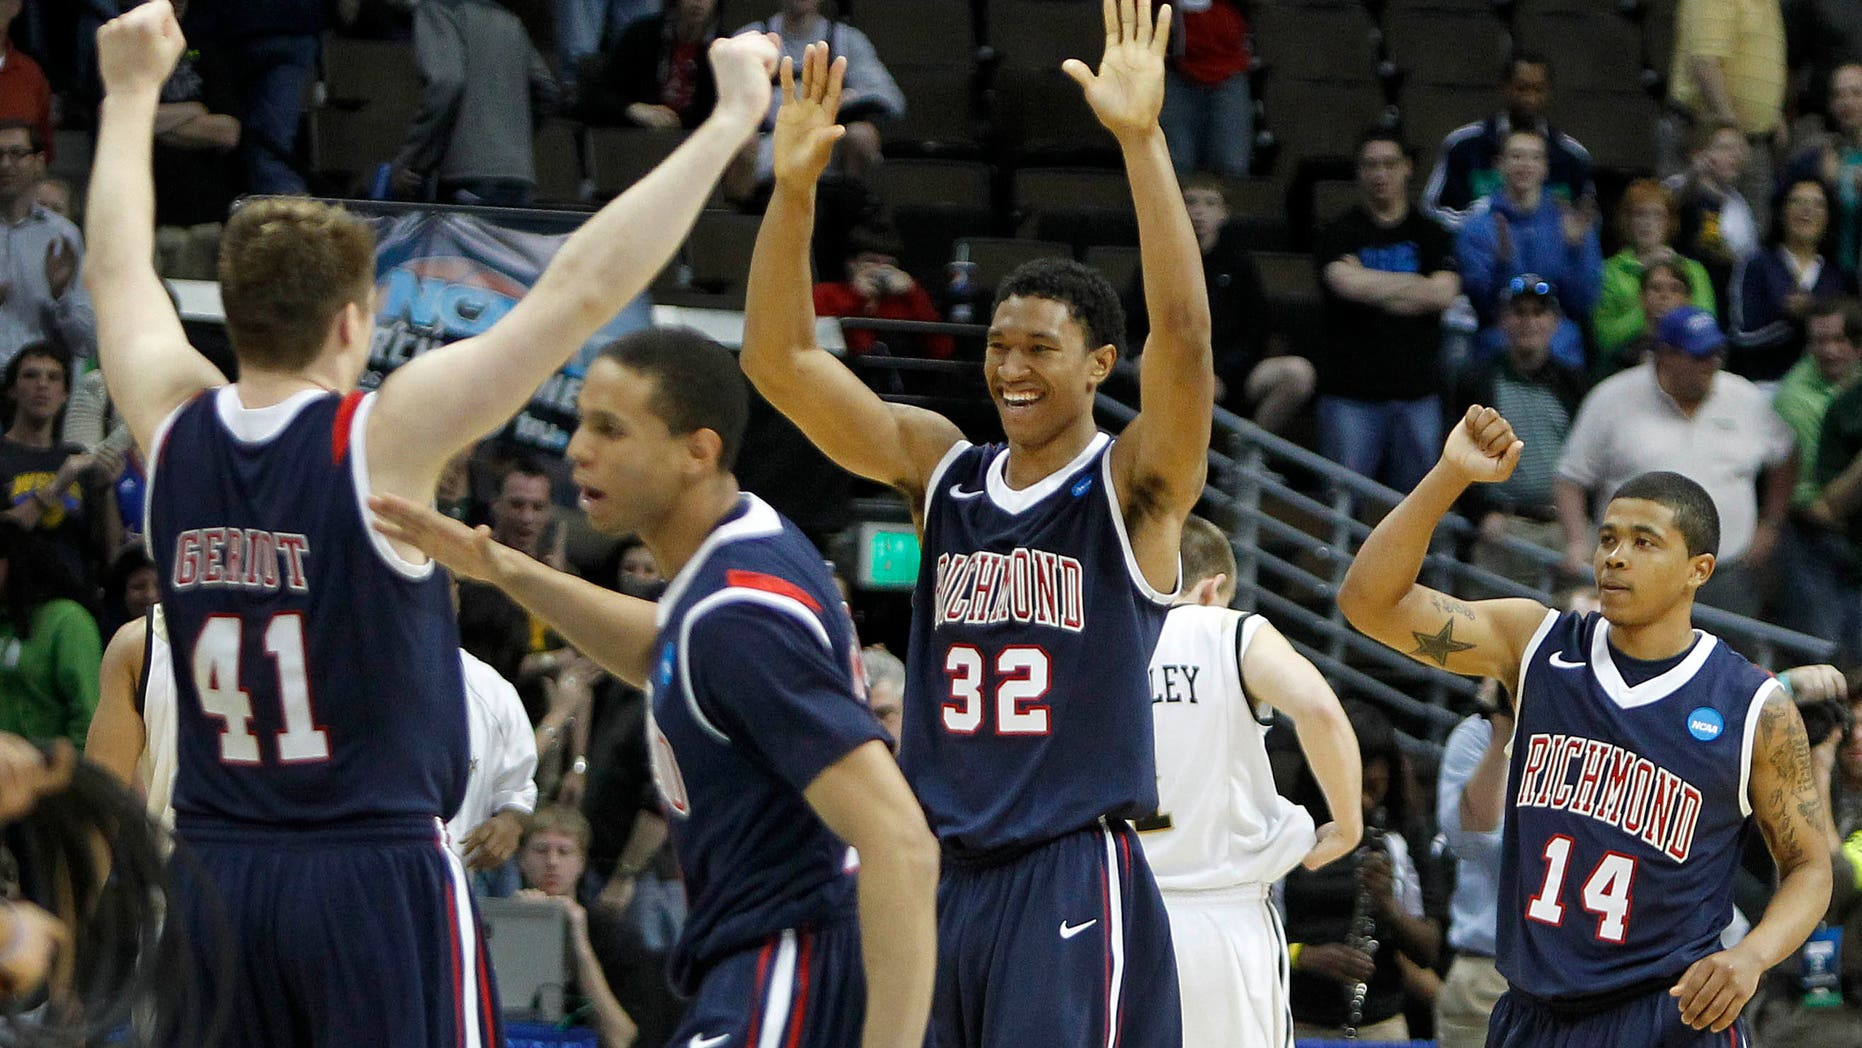 March 17: Richmond's Dan Geriot (41), Justin Harper (32),Francis-Cedric Martel (15) and Kevin Anderson (14) celebrate after their 69-66 win over Vanderbilt in a Southwest regional second round NCAA tournament college basketball game in Denver. (AP)